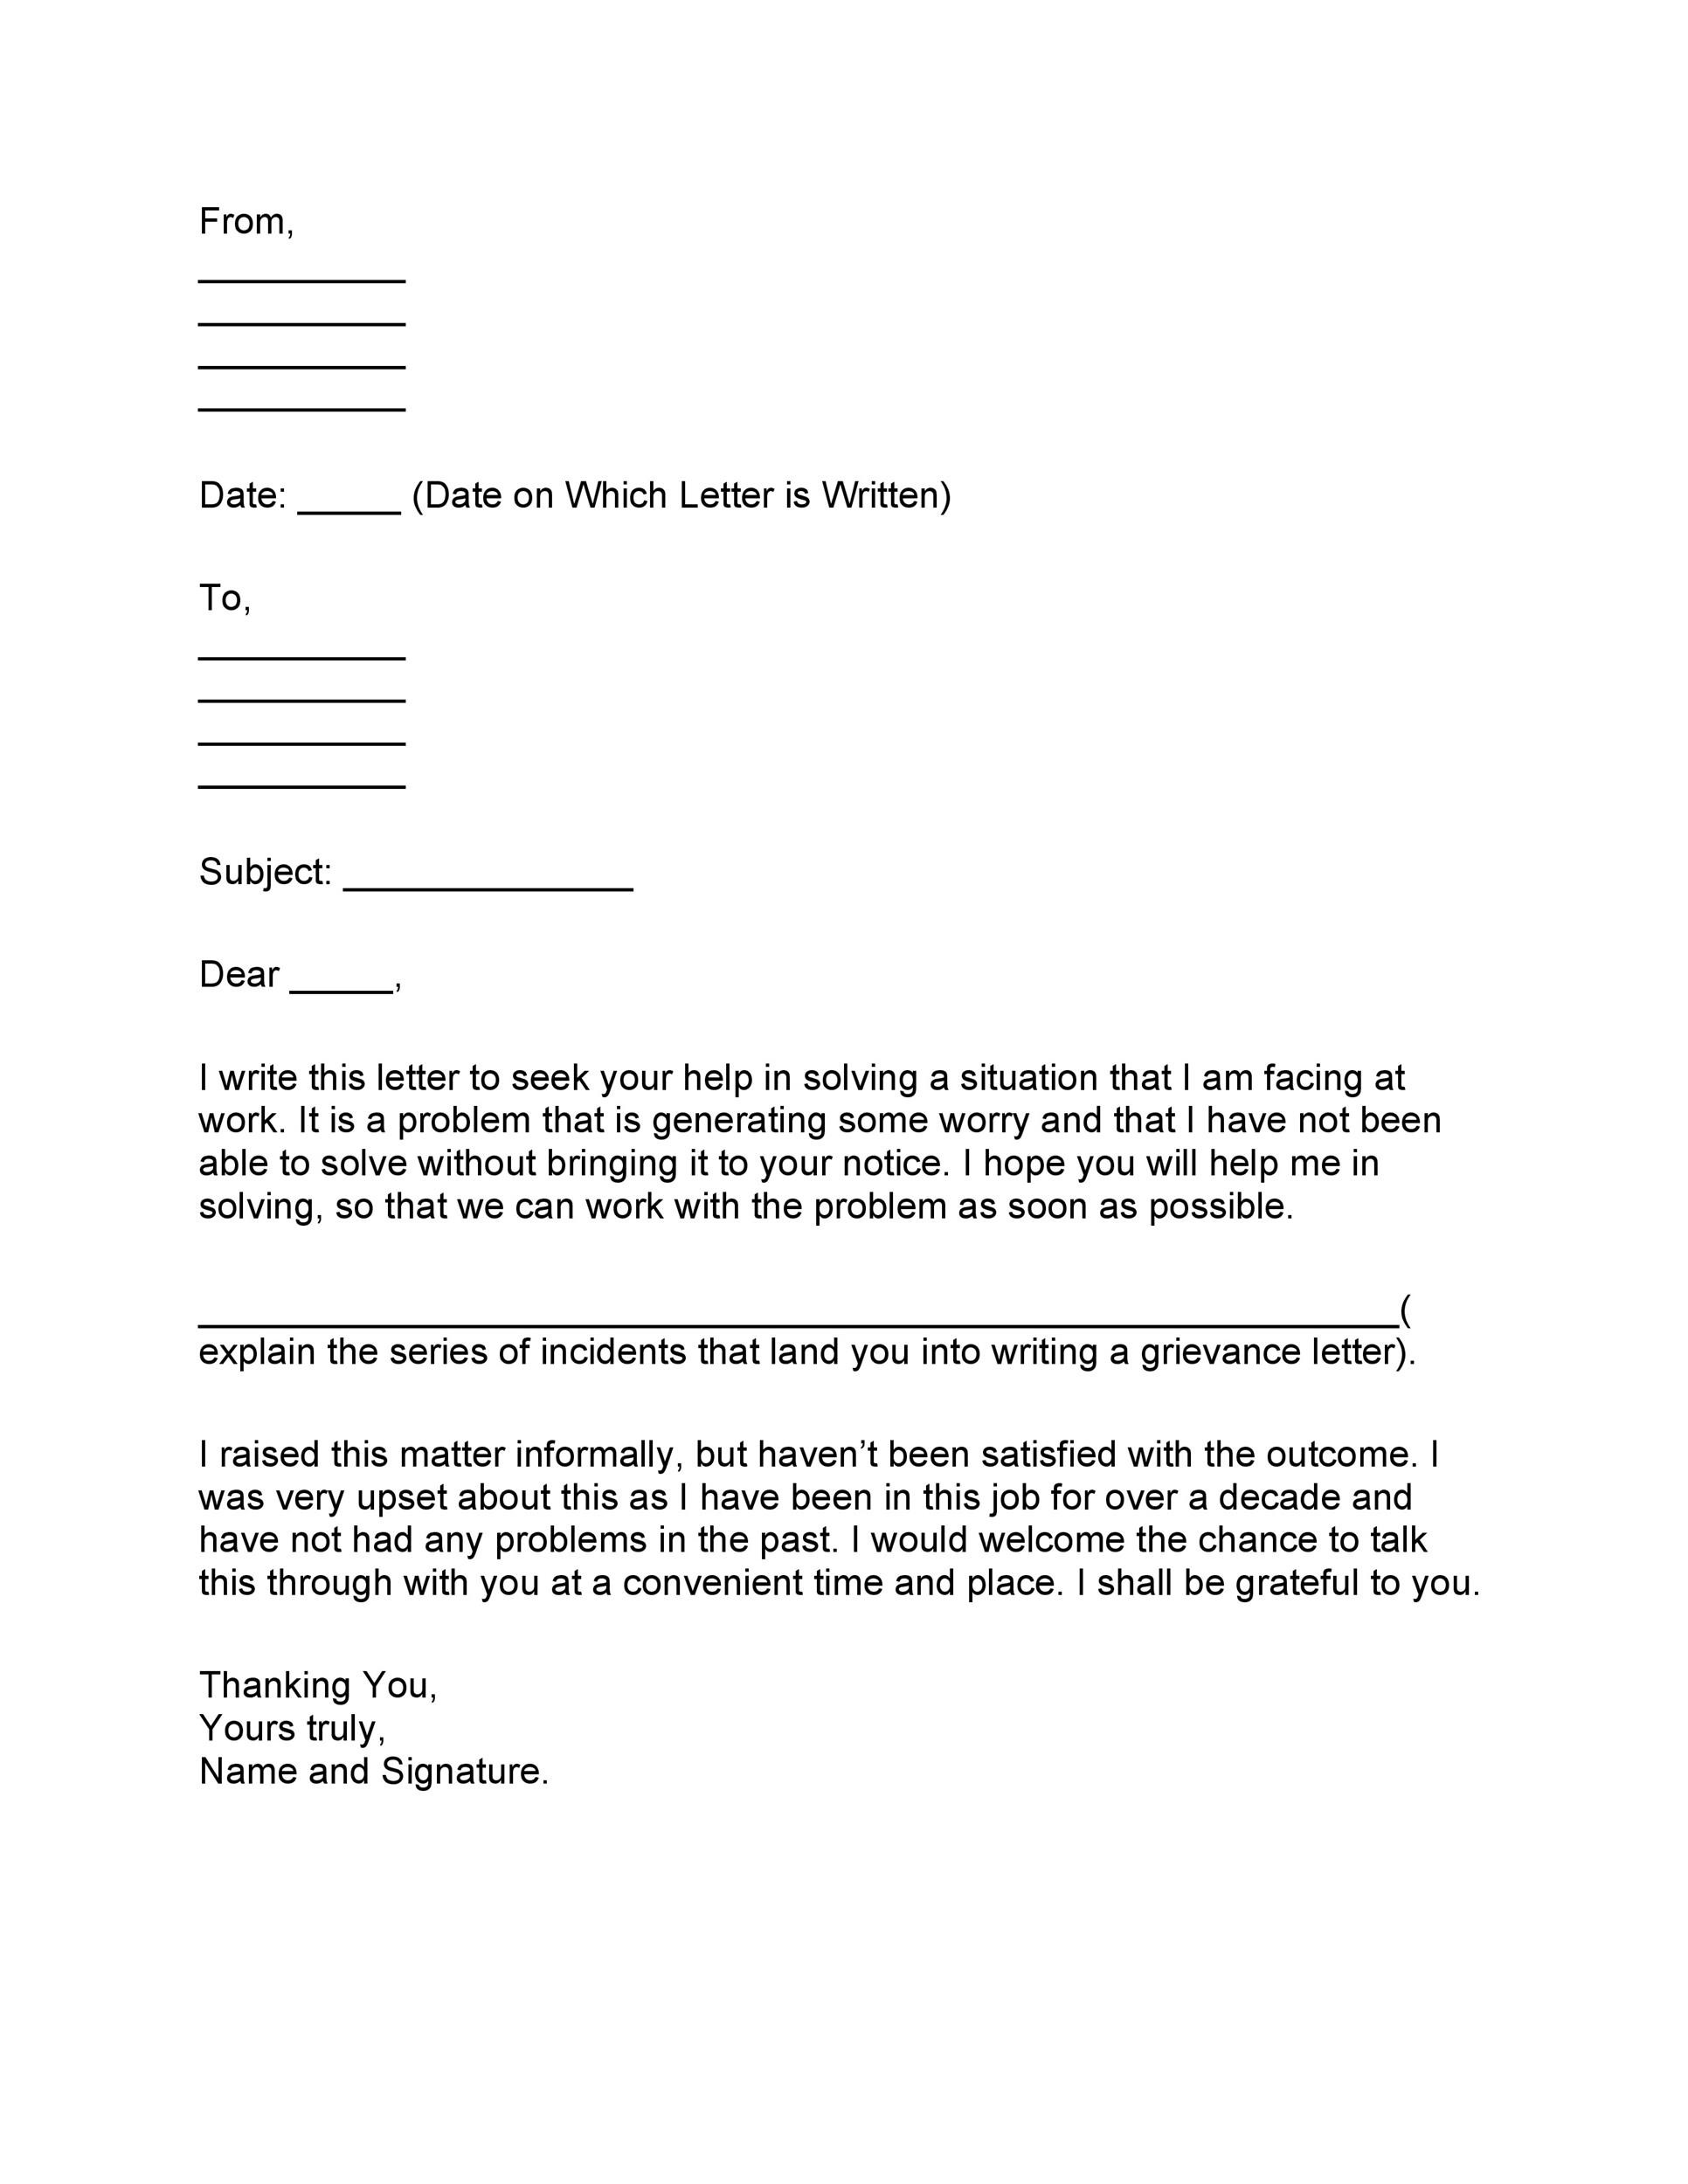 37 editable grievance letters (tips & free samples) - template lab